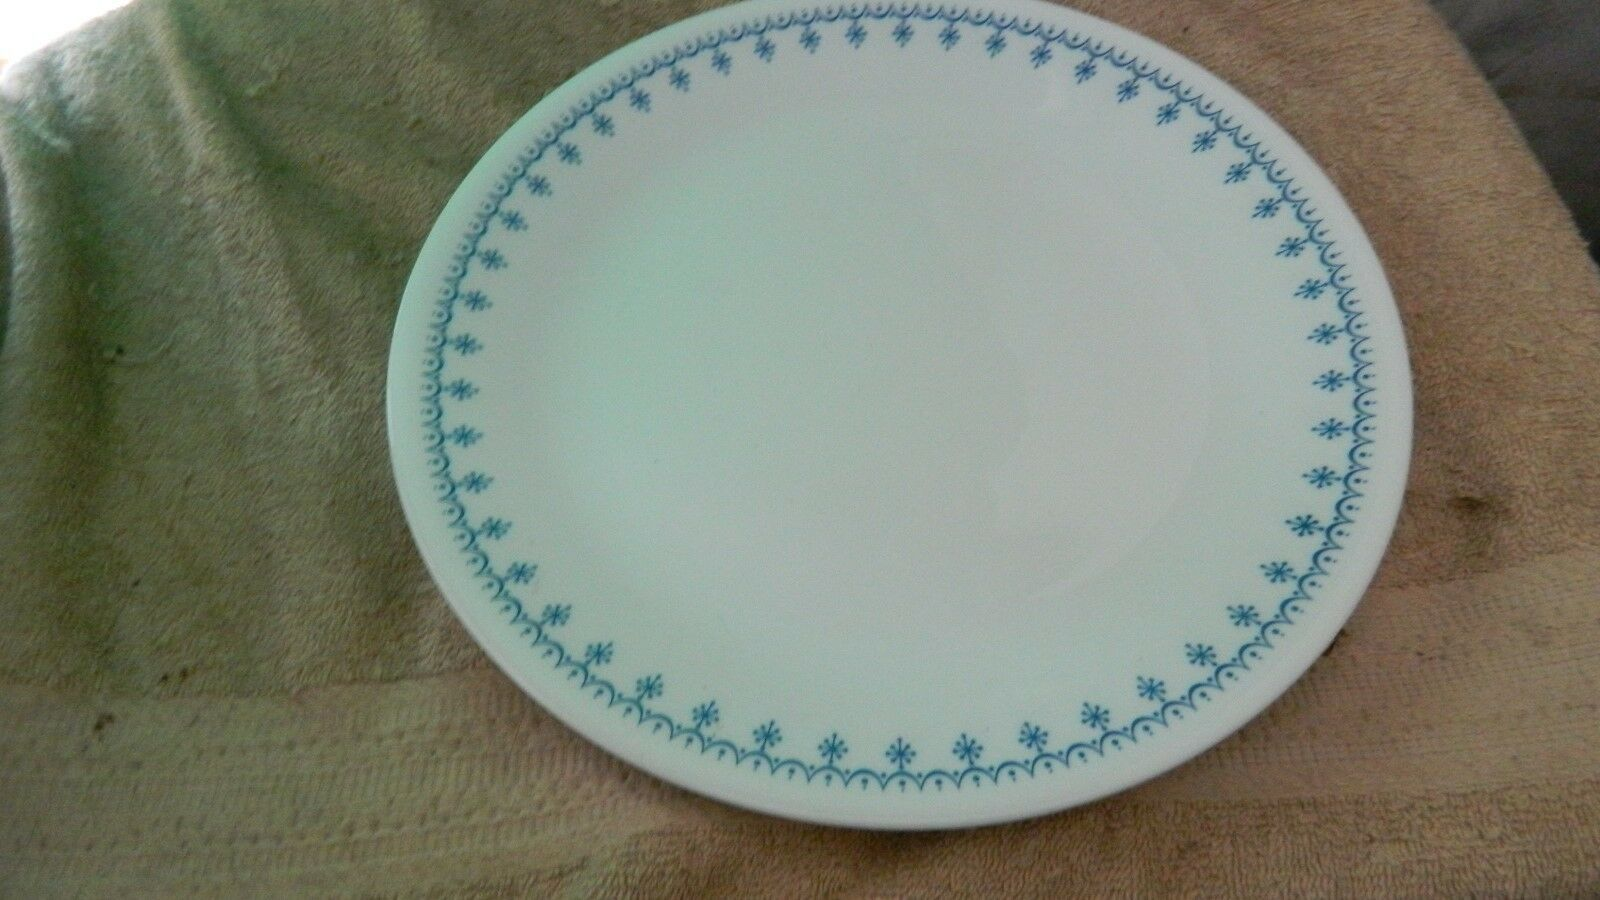 Primary image for CORELLE SNOWFLAKE BLUE DINNER PLATES 10.25 IN SET OF FOUR FREE USA SHIPPING